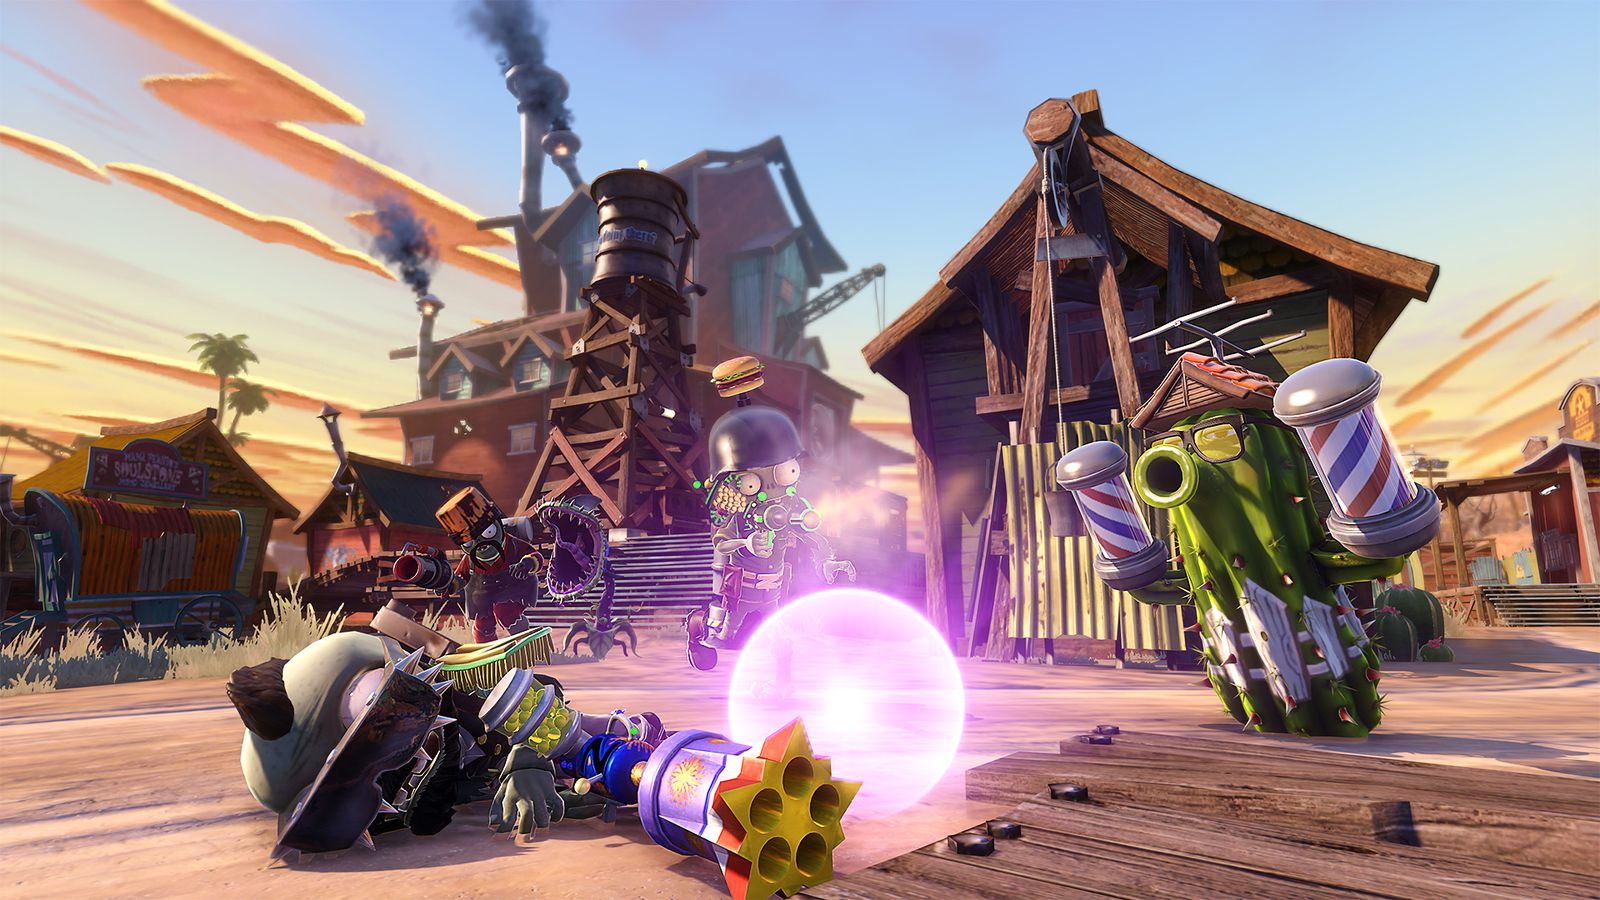 Plants vs zombies garden warfare gets aquafina sponsored characters in new dlc polygon for Plants vs zombies garden warfare 1